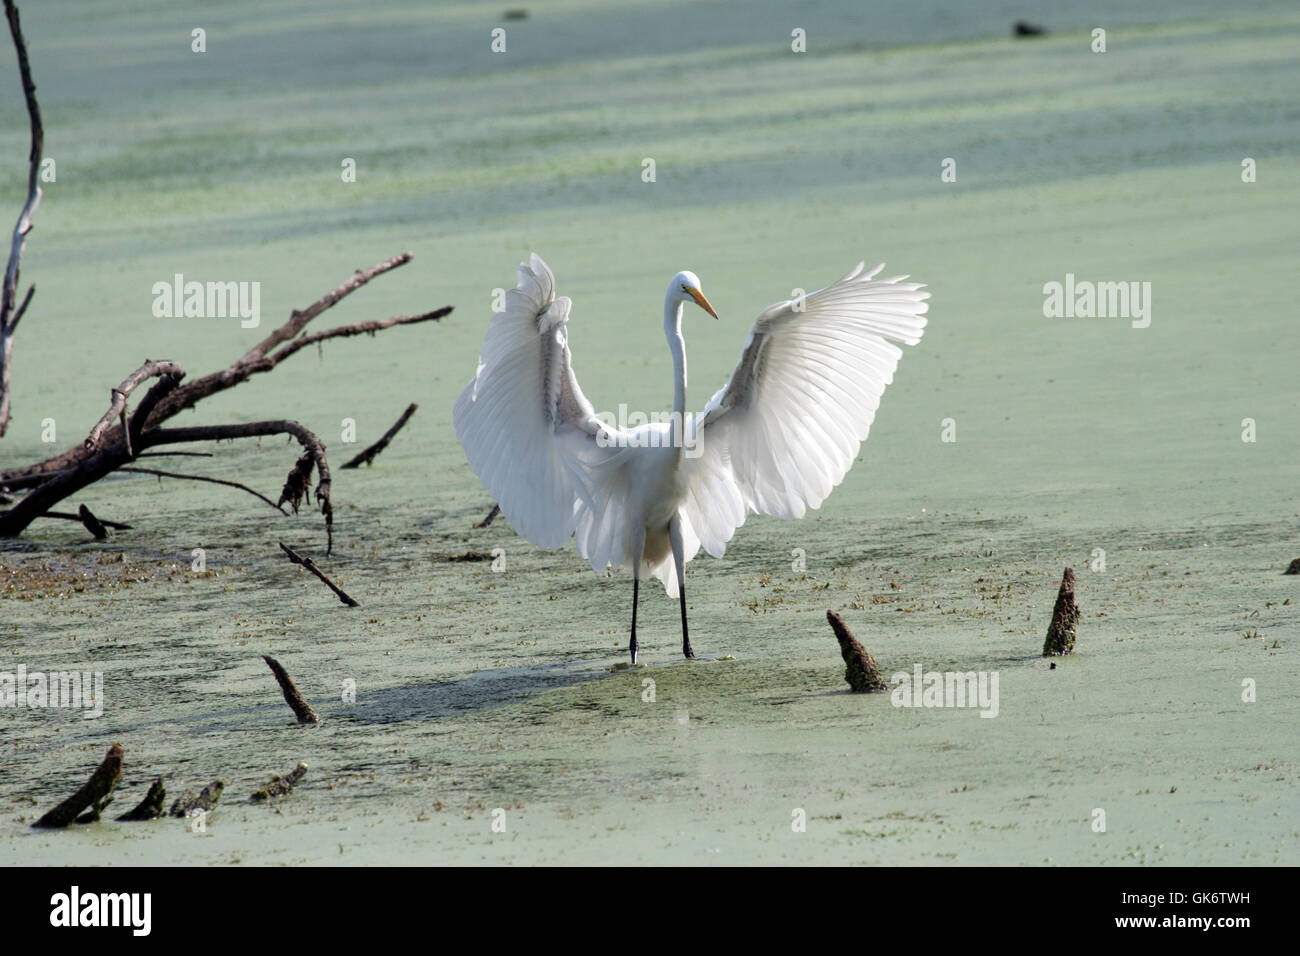 Great white egret spreading wings in pond - Stock Image